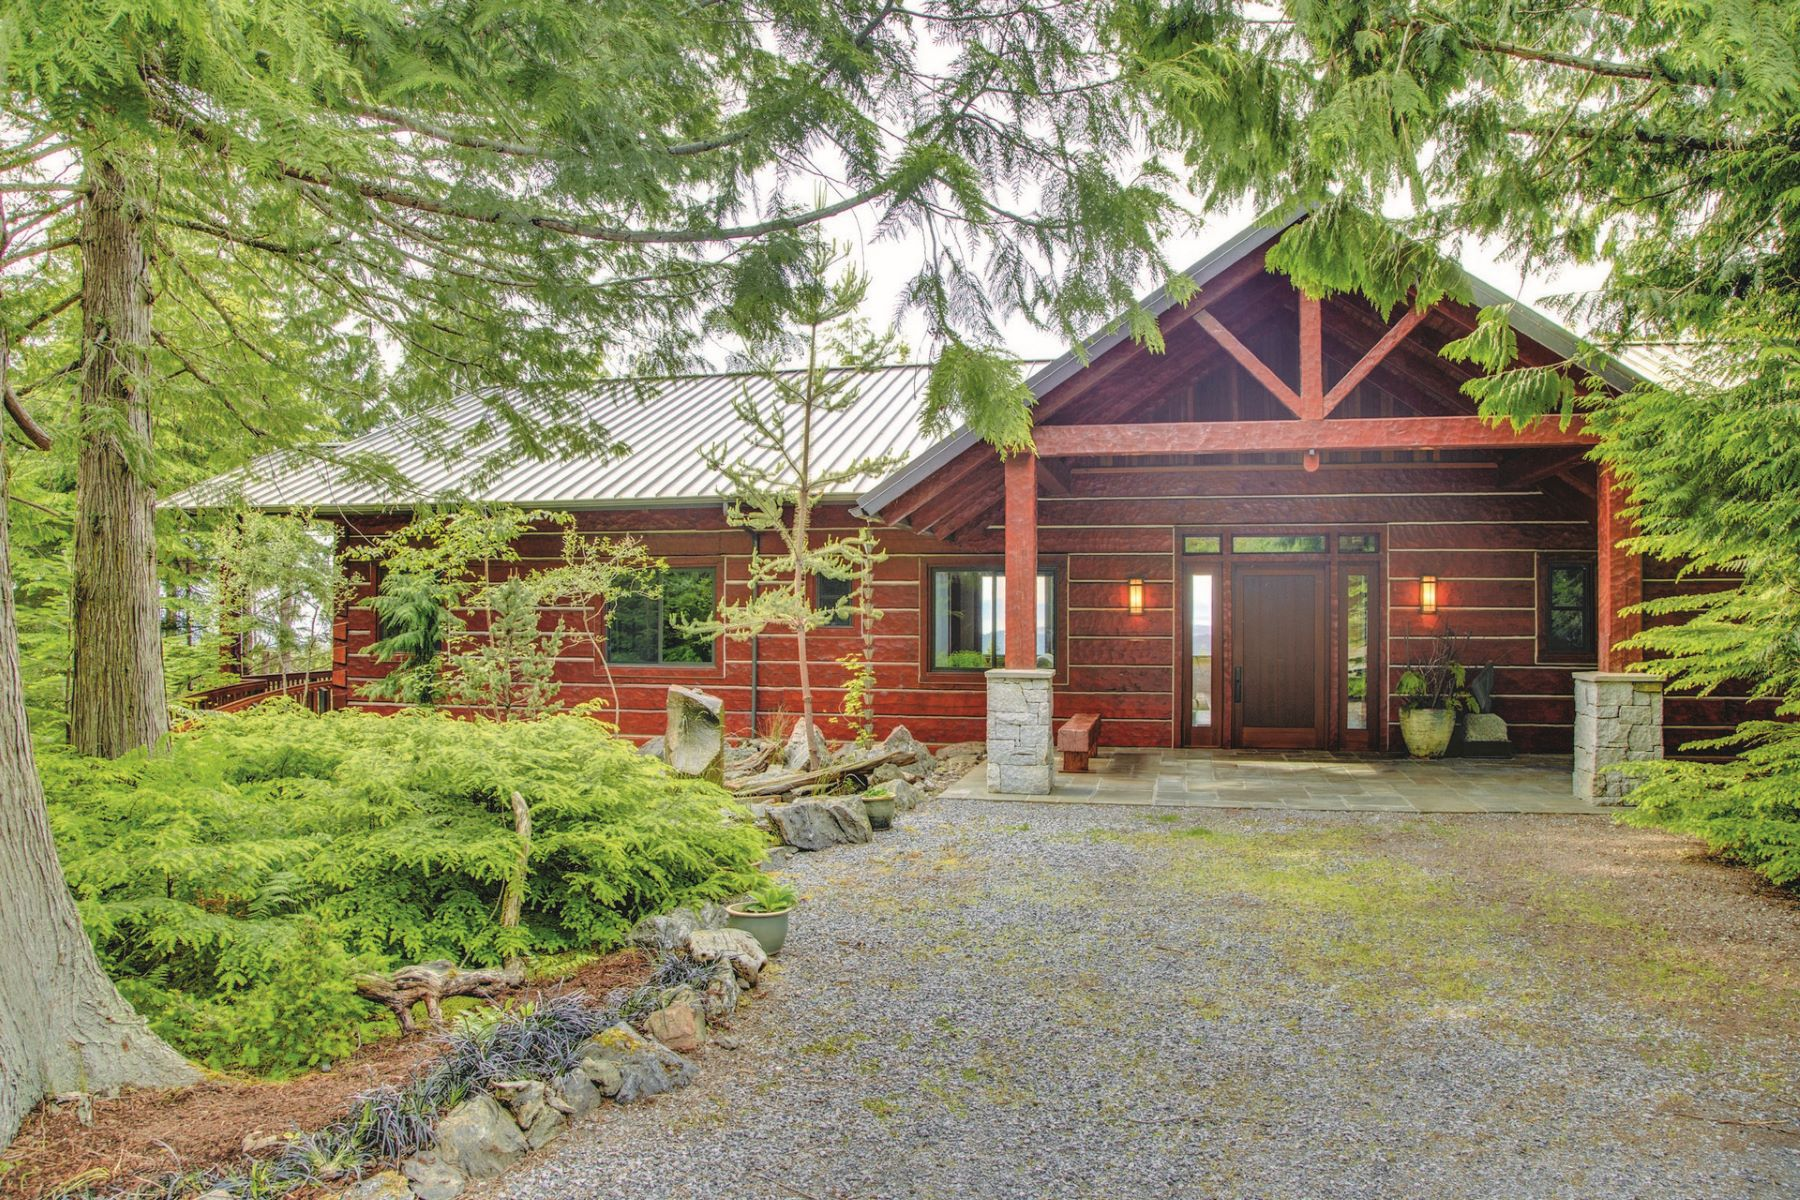 Additional photo for property listing at Spring Hill Lodge 609 Spring Hill Rd Orcas, Washington 98245 United States